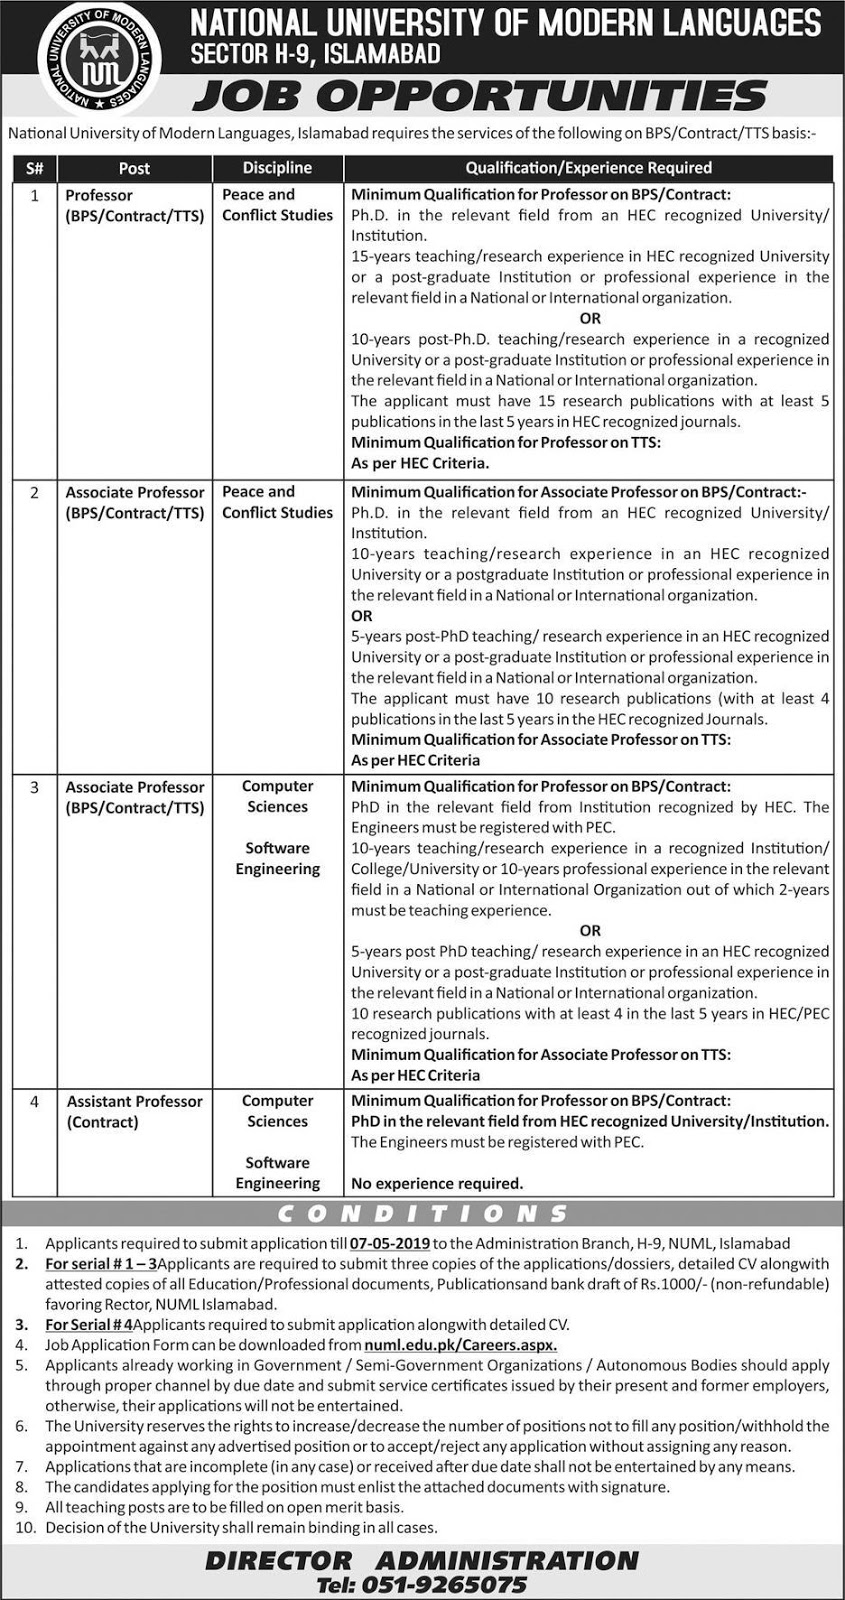 Advertisement for National University of Modern Languages Jobs